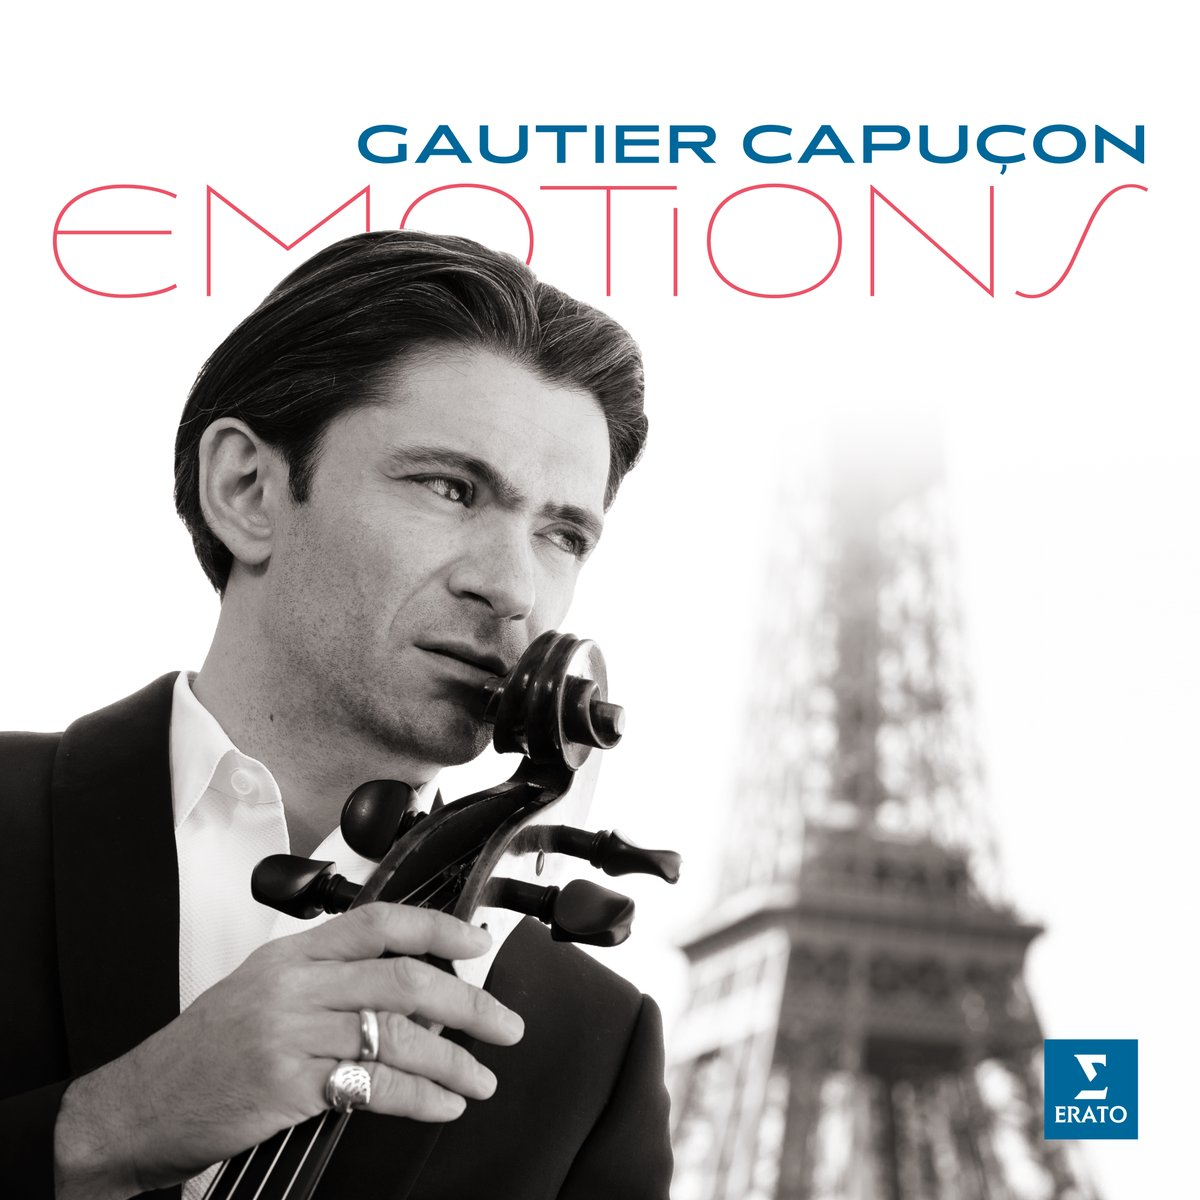 """""""She Remembers"""" by @maxrichtermusic, known from the HBO series The Leftovers, adds a contemporary touch to the program of @GautierCapucon's upcoming album, with @JeromeDucros, Orchestre de chambre de Paris, Adrien Perruchon & @MusiqueSNDP.  Listen here: https://t.co/OQwNVjZND3 https://t.co/bOiaH5dP2a"""